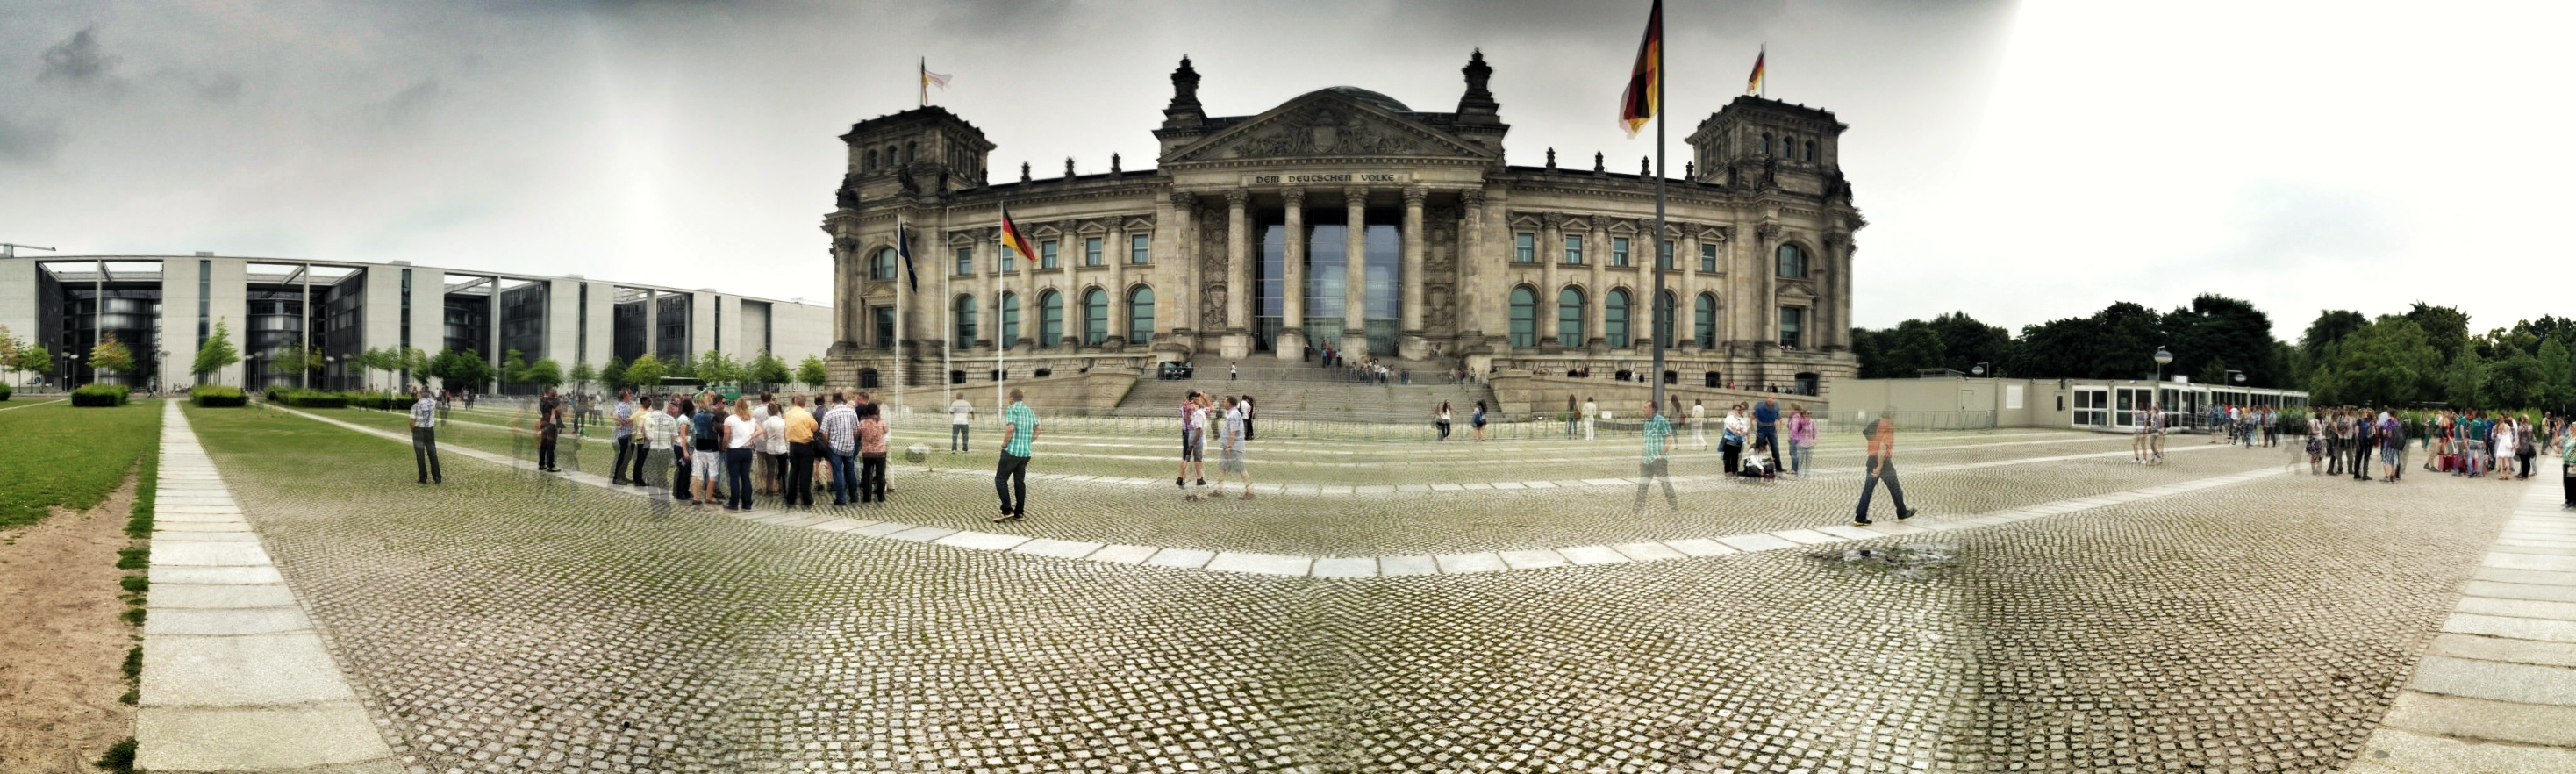 I Fell in Love with the Reichstag